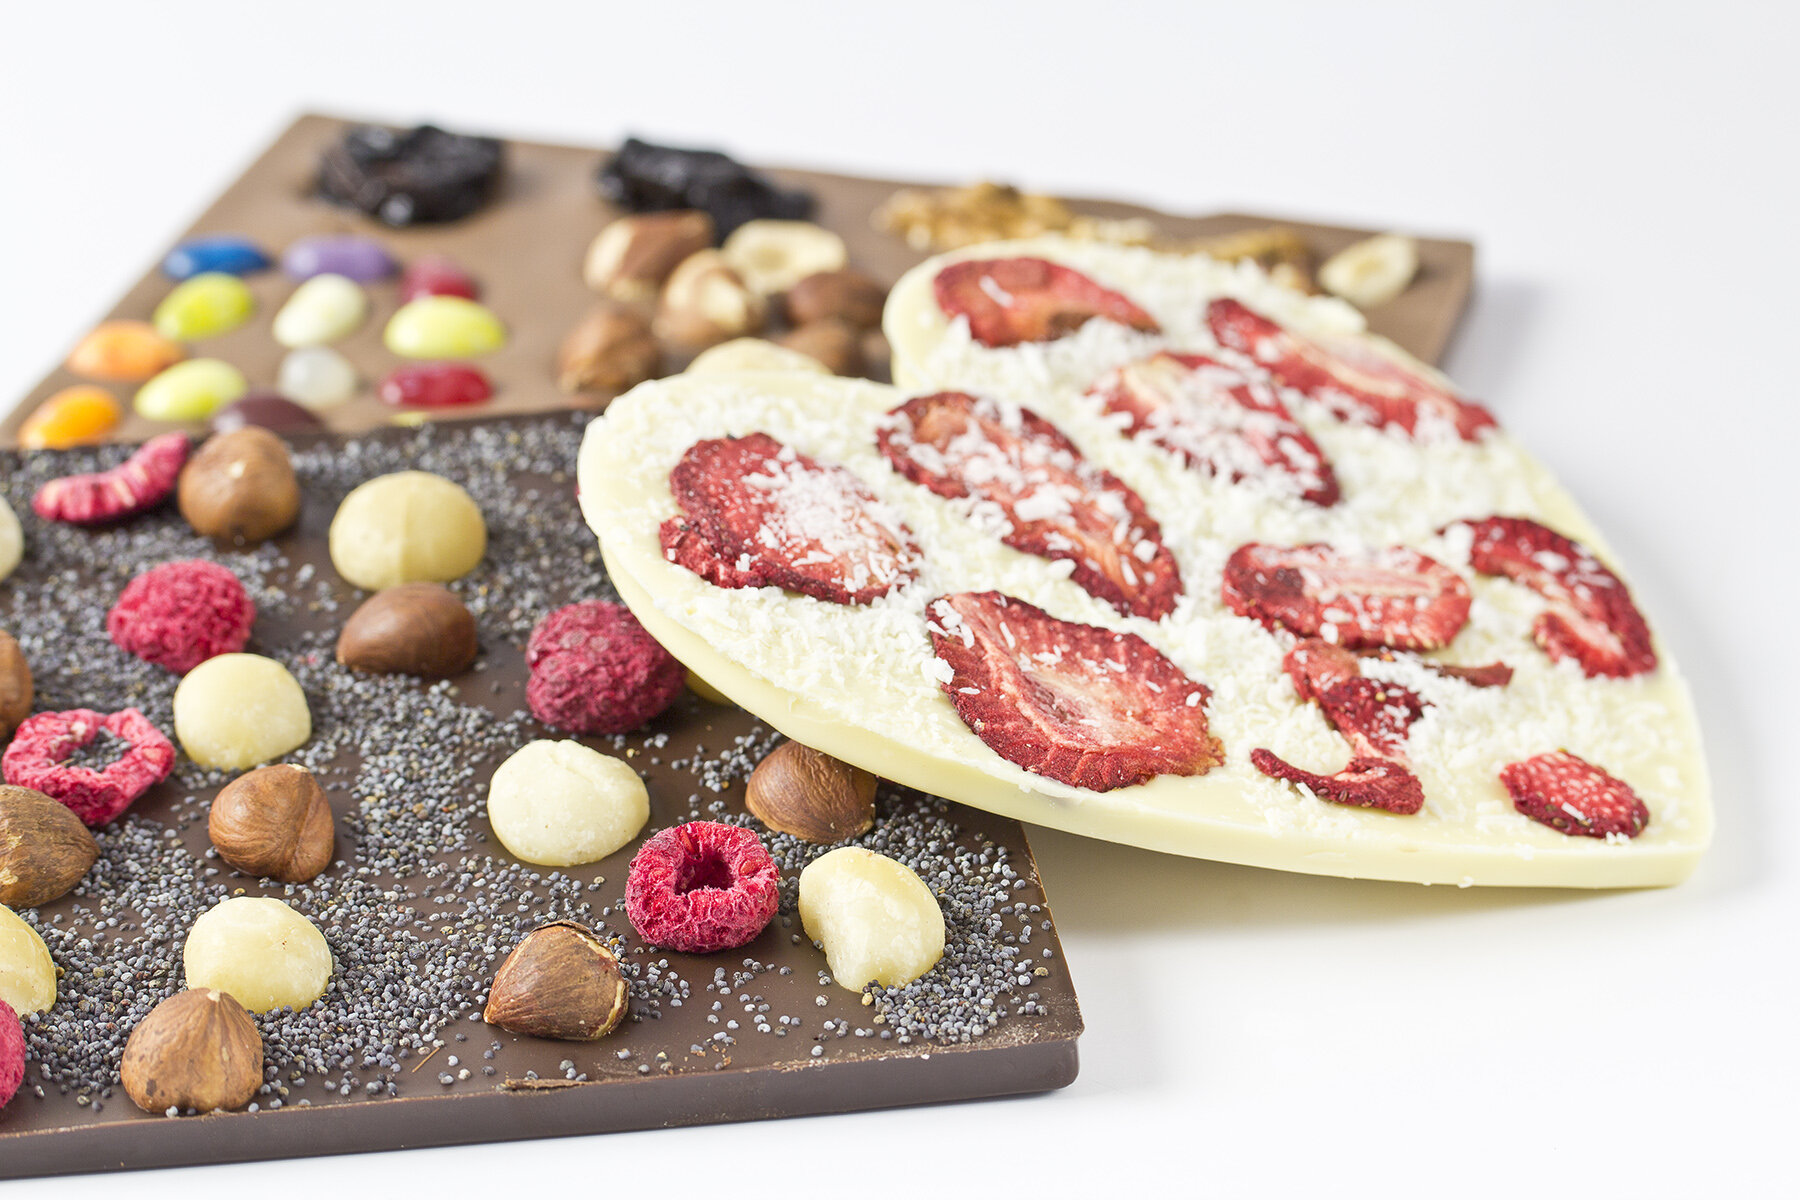 Design your own chocolate tablet